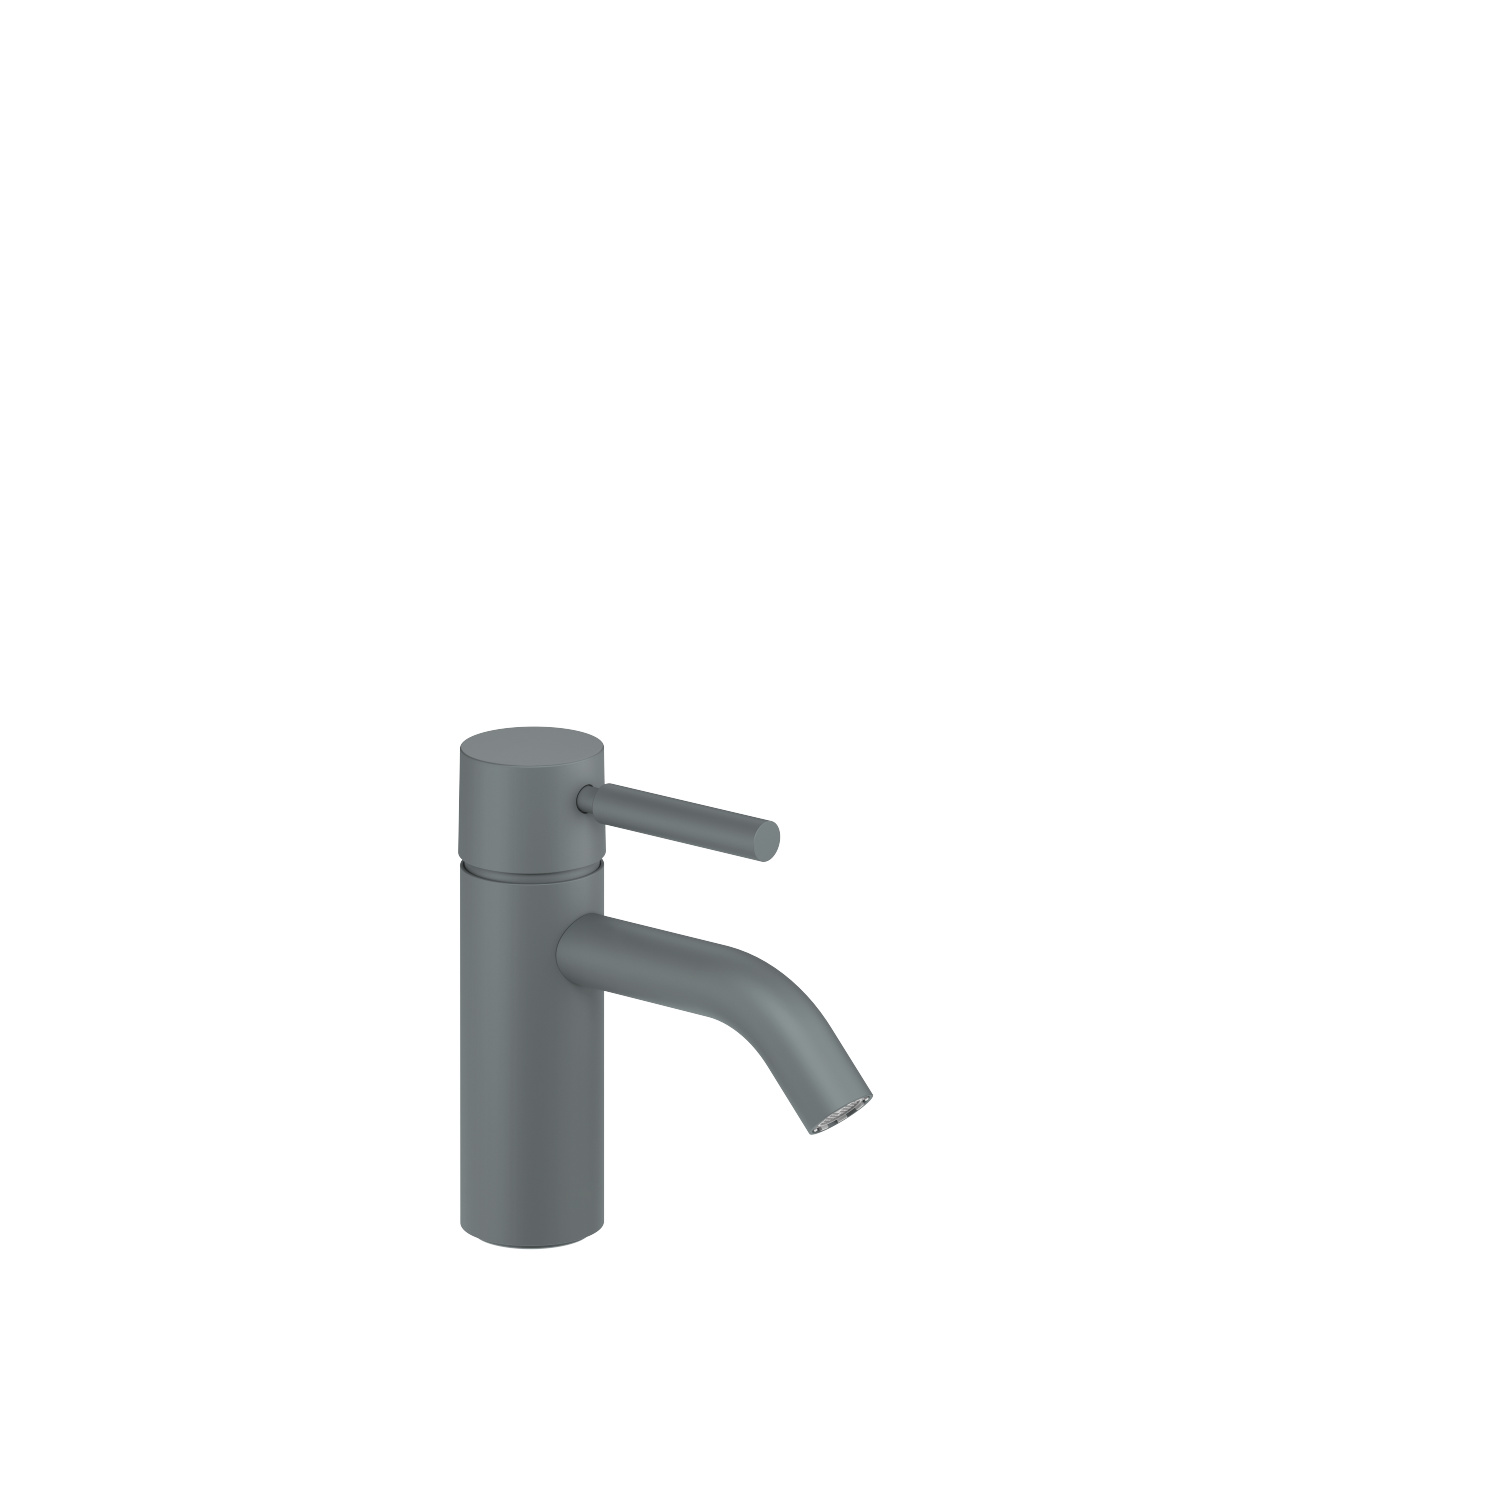 Single-lever basin mixer without pop-up waste - light grey